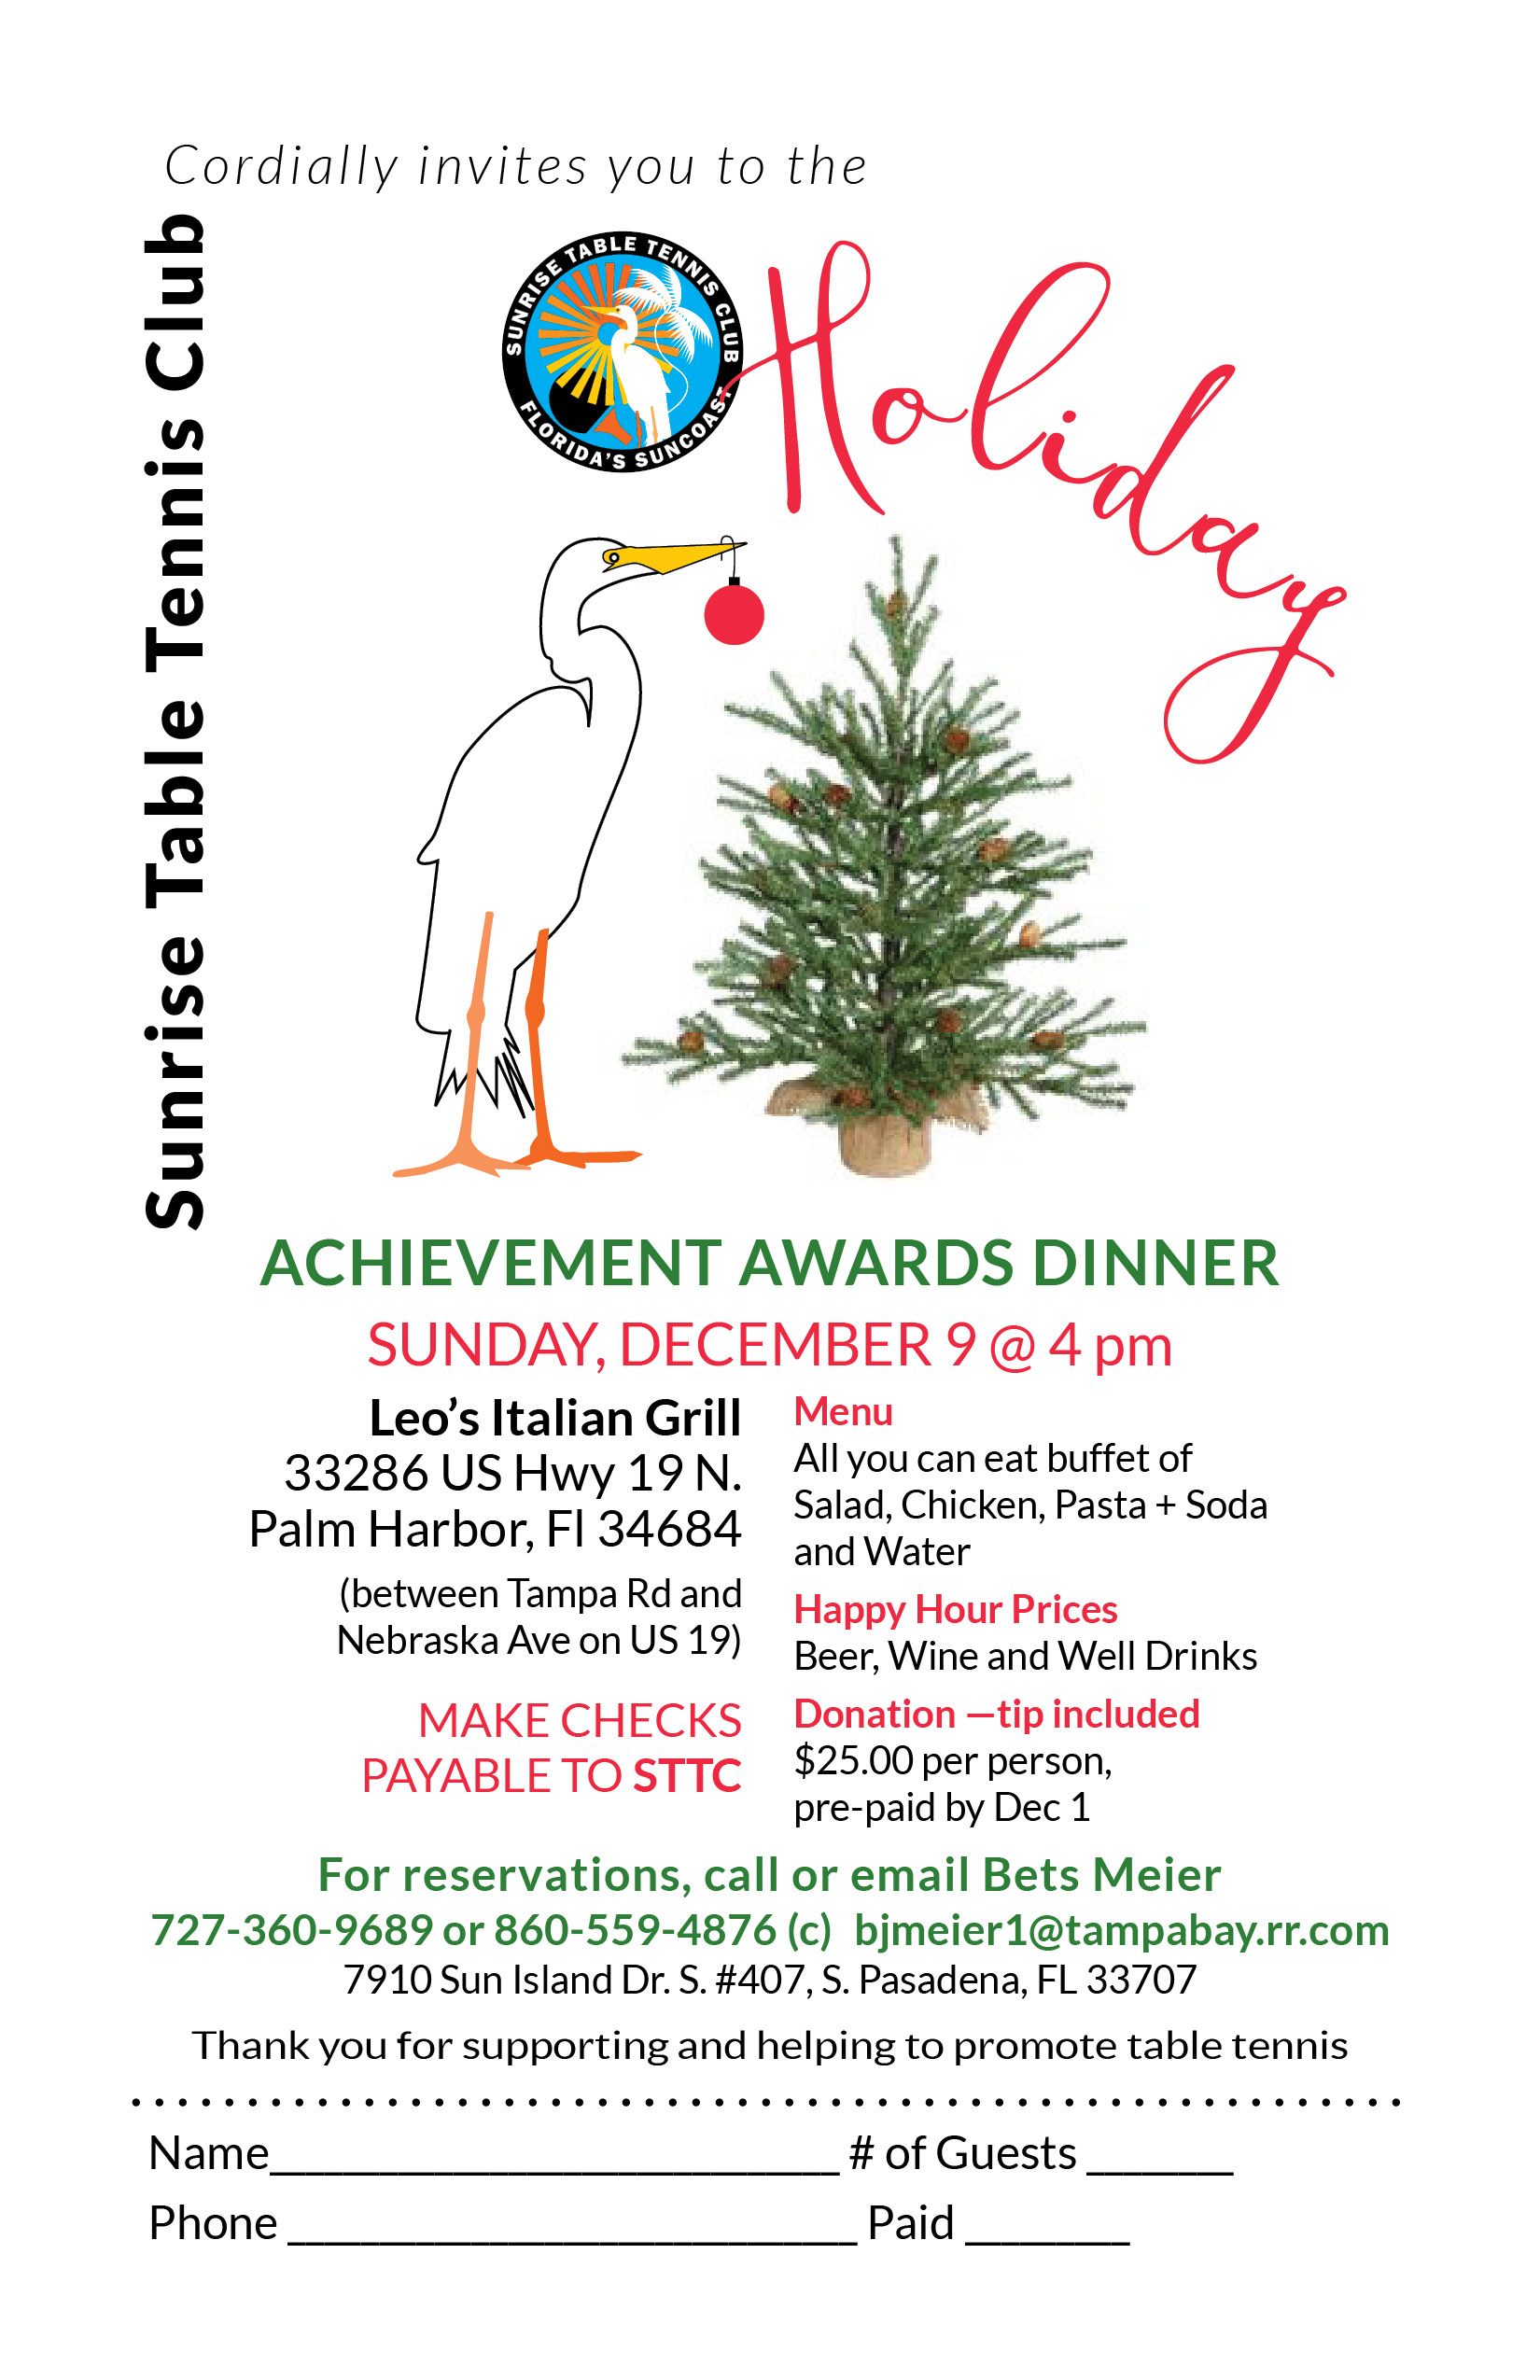 Holiday Achievement Awards Dinner - Sunrise Table Tennis Club